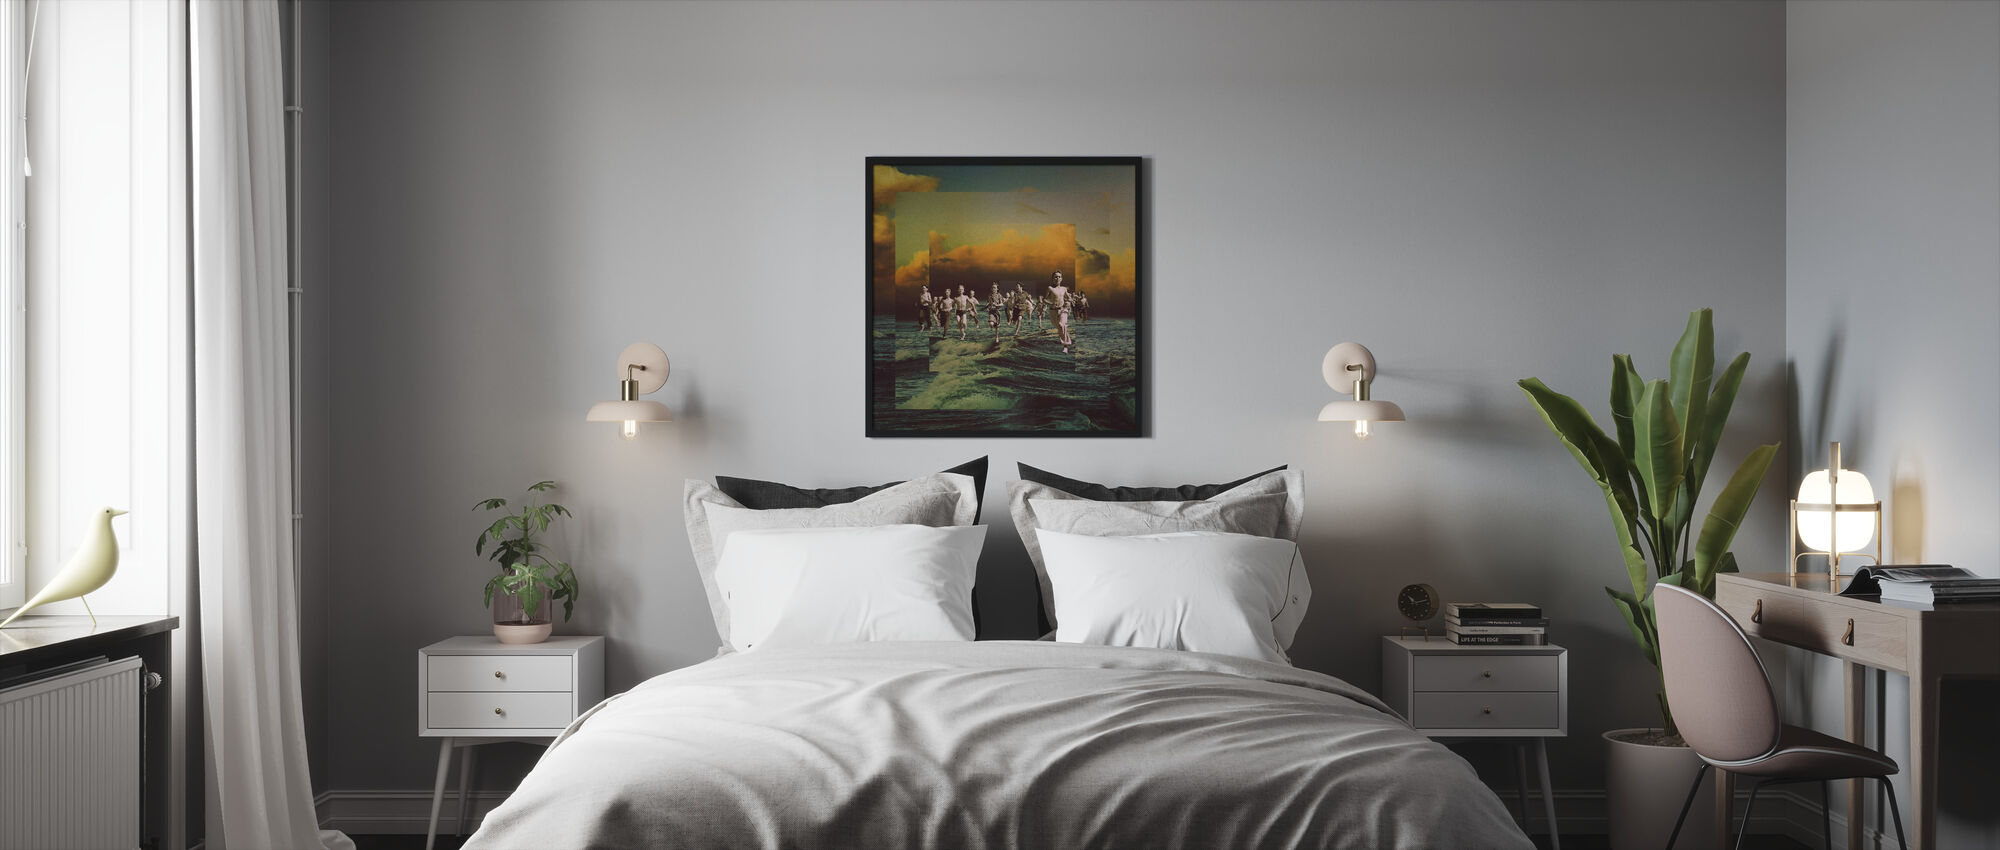 Runaway - Framed print - Bedroom